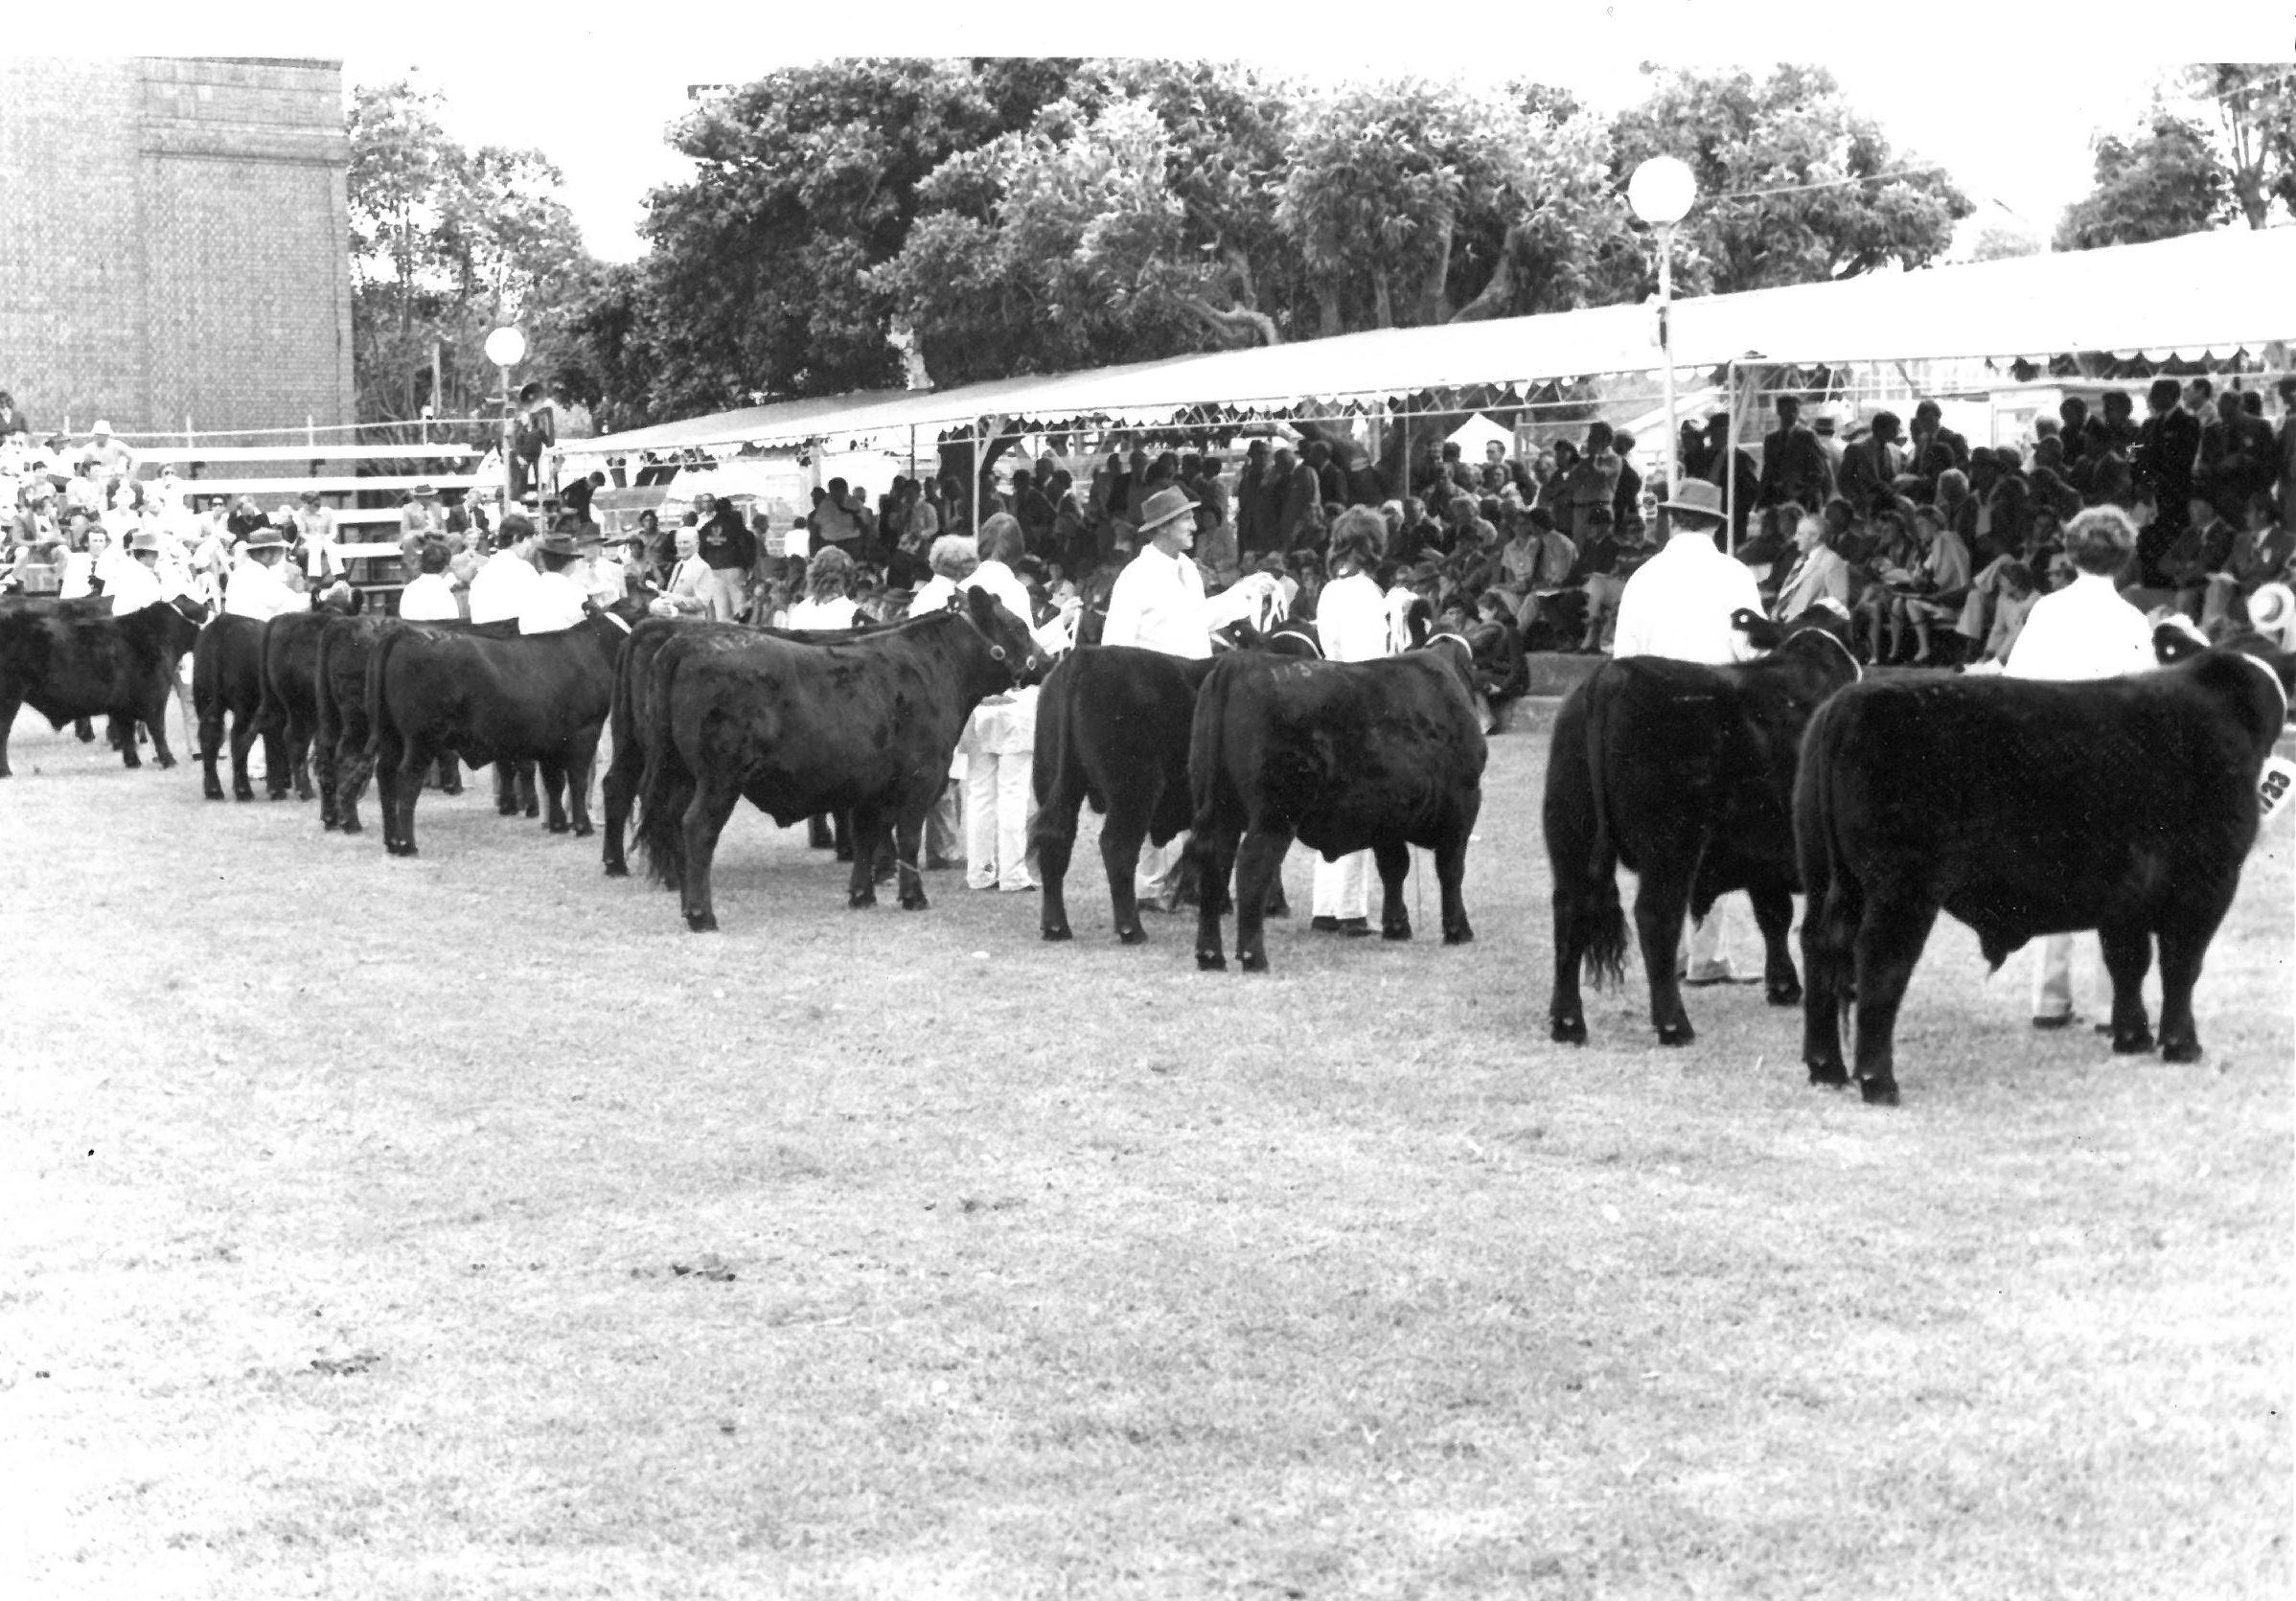 A line up of steers at the 1981 Sydney Royal Show